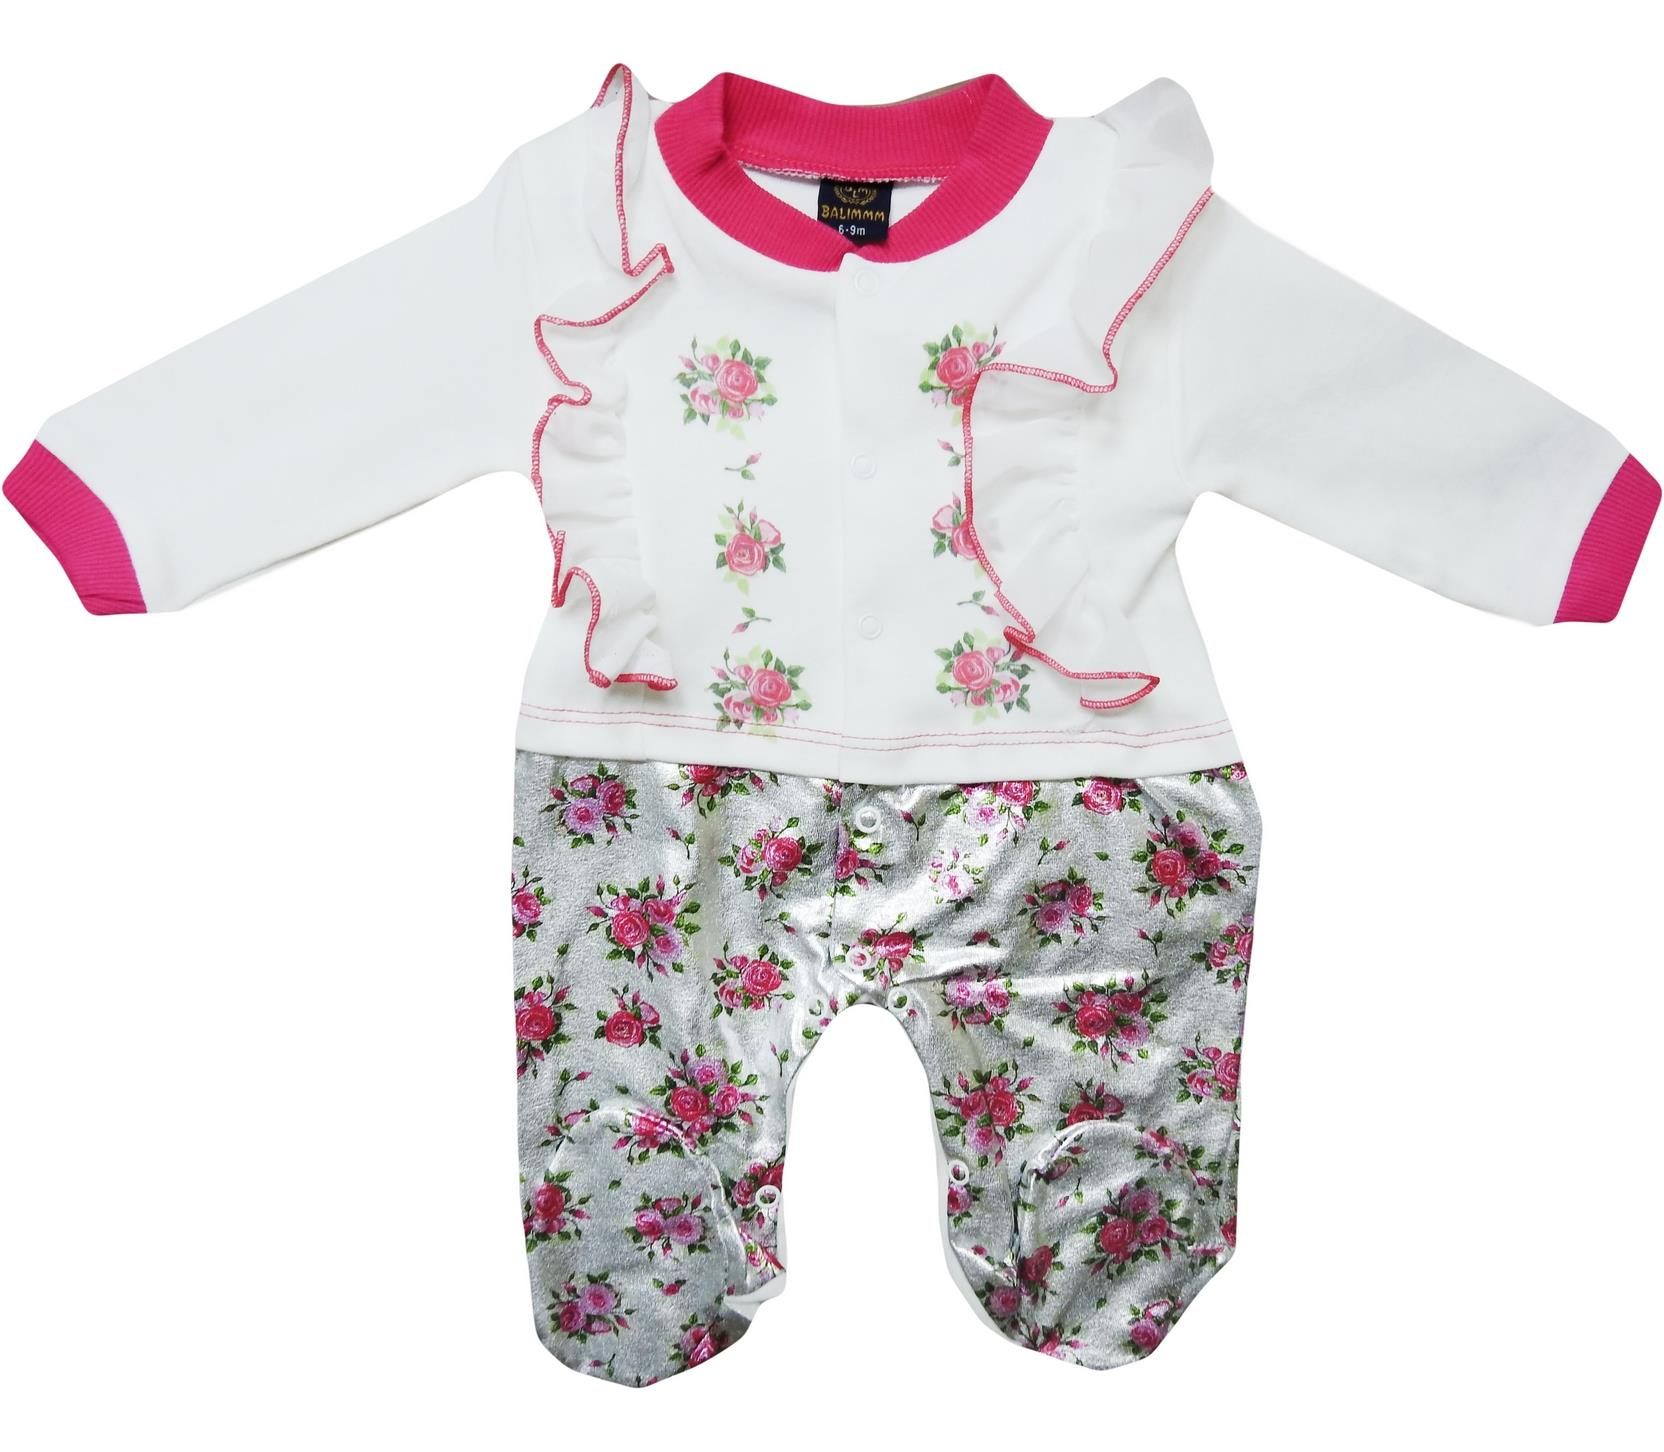 115 foil print overalls for girl babies 3-6-9 month